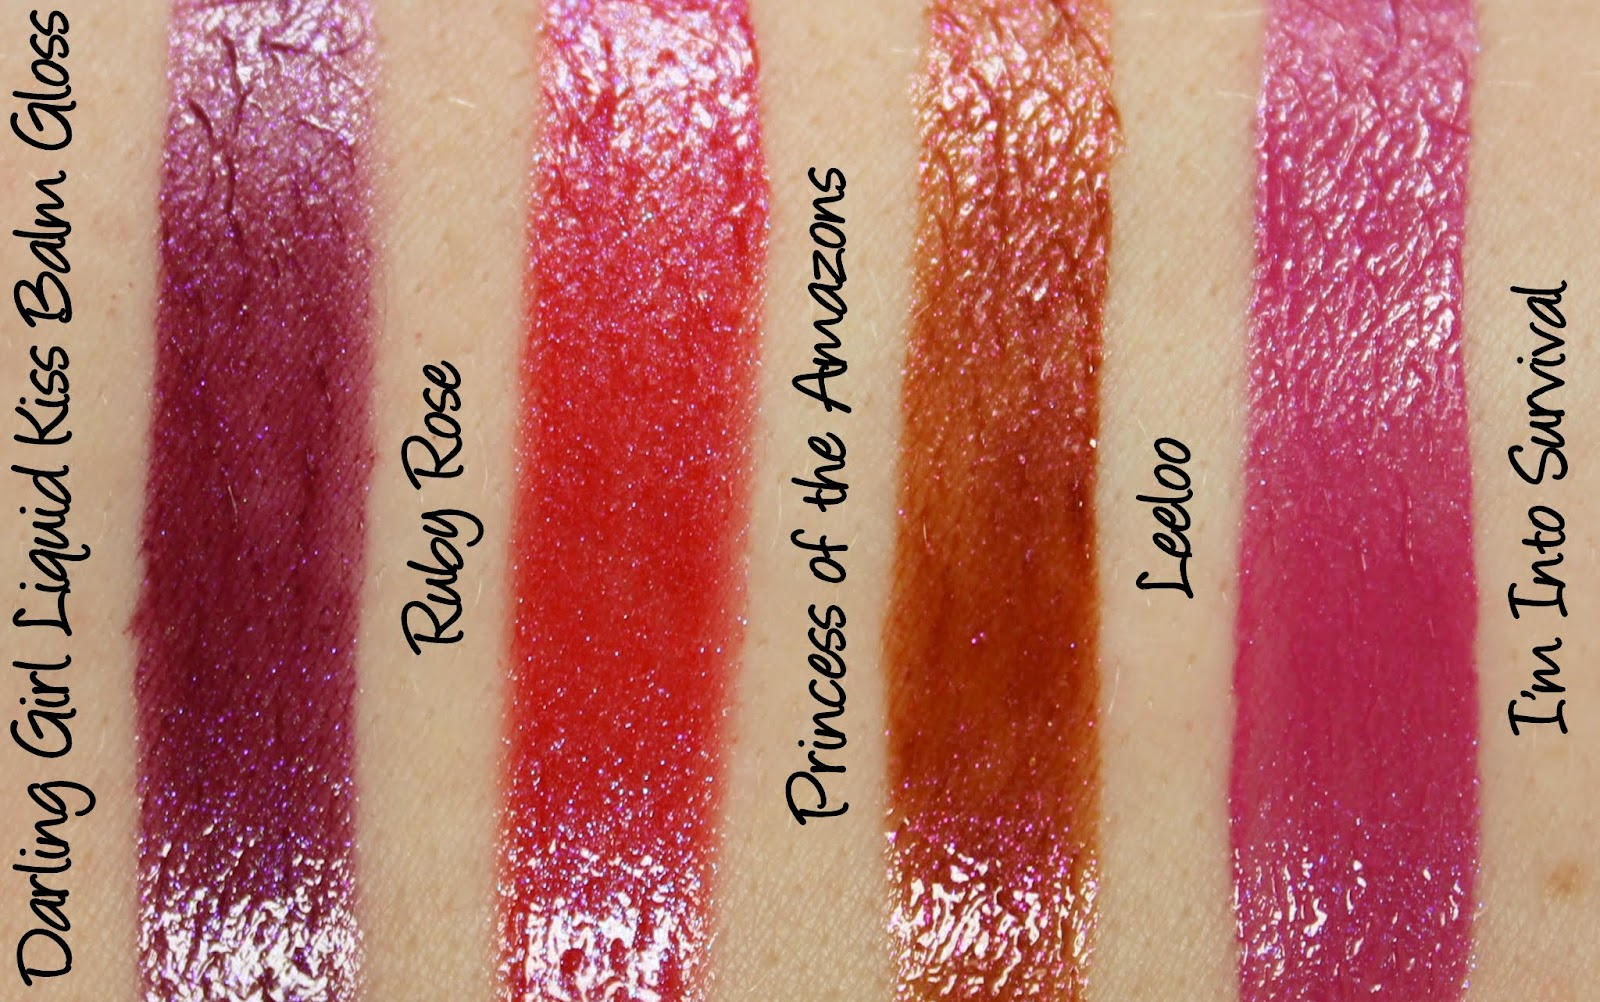 Darling Girl Liquid Kiss Balm Gloss - Ruby Rose, Princess of the ...